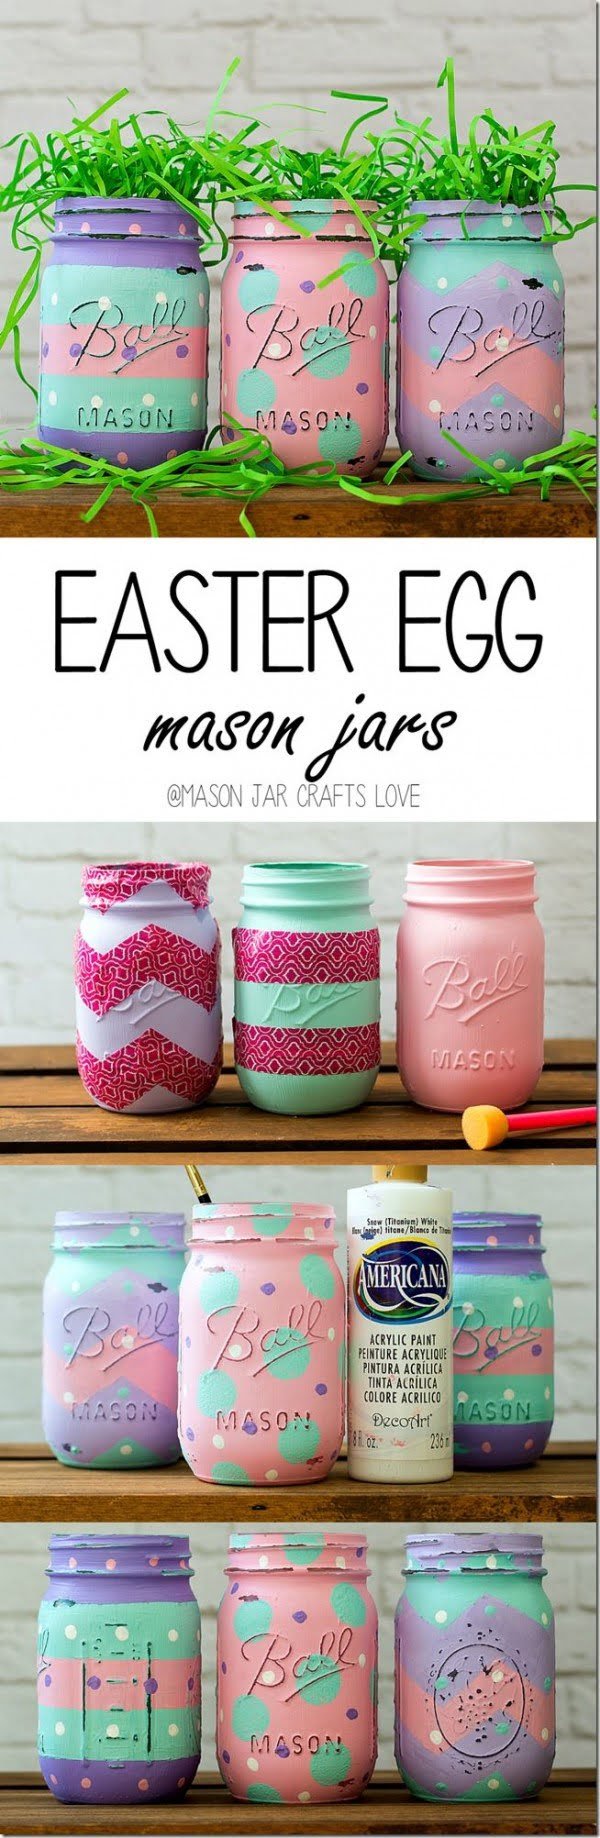 Check out this cute  decor idea with mason jars. Love it!